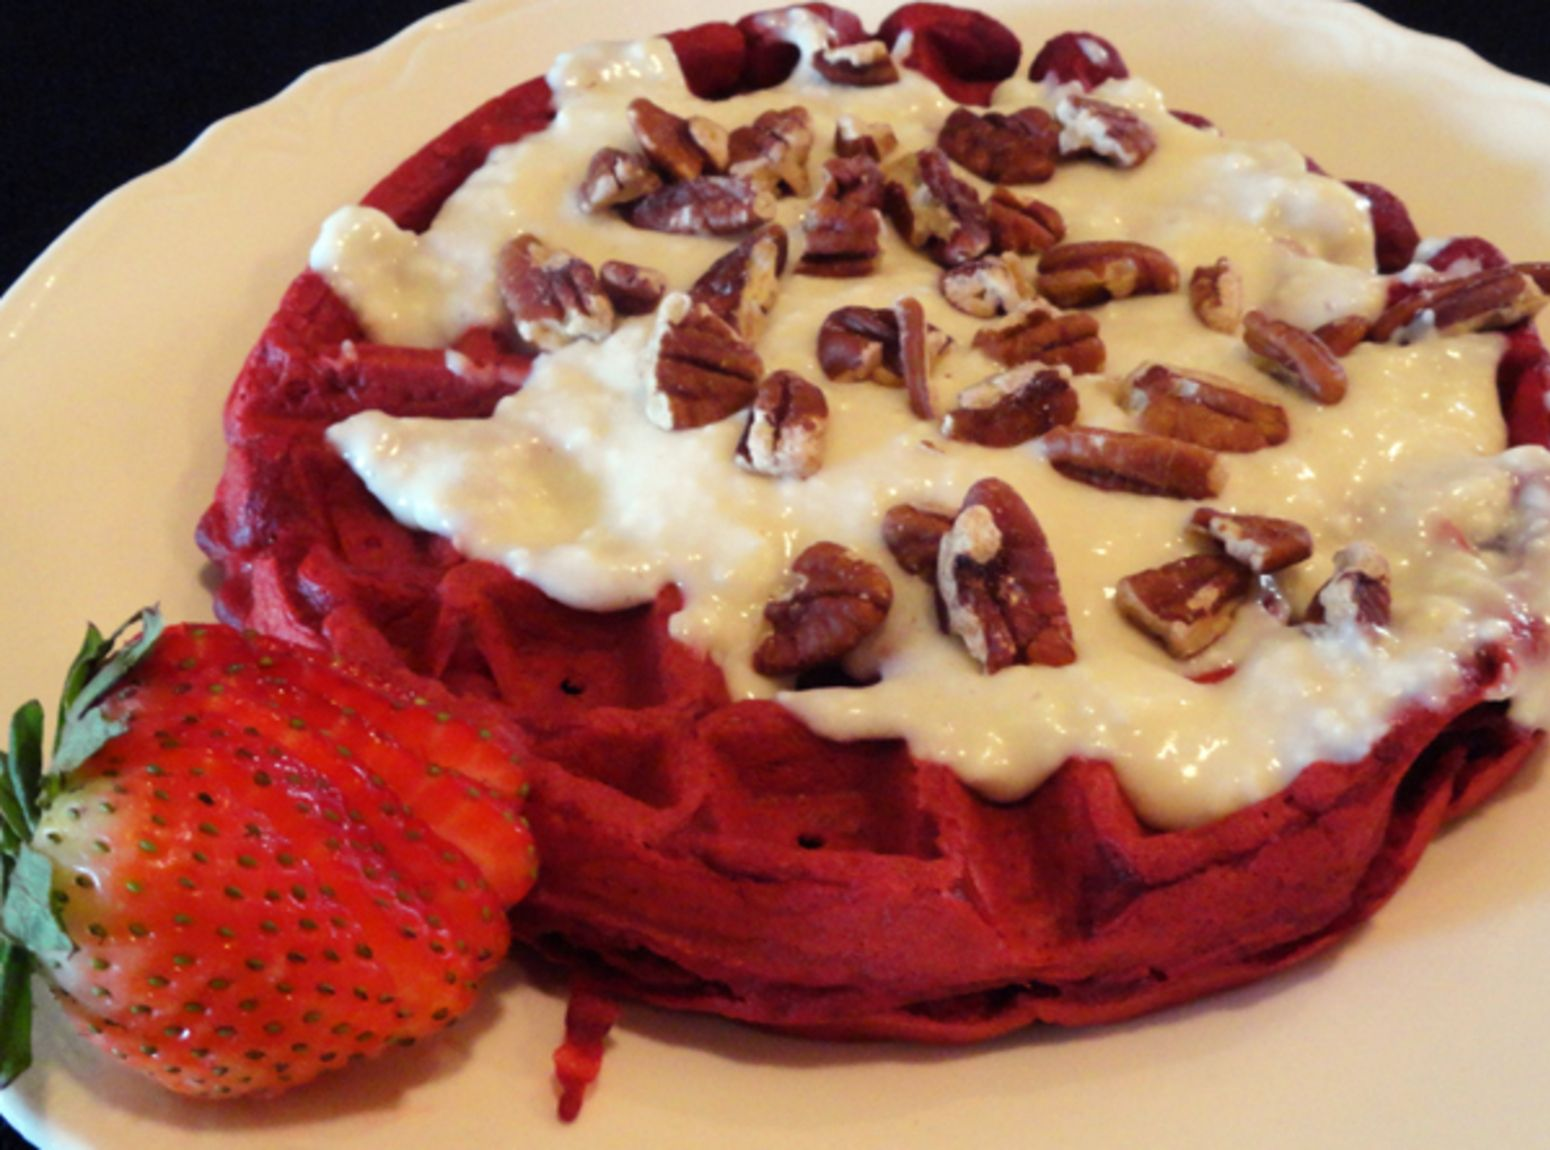 Southern Red Velvet Waffles with Cream Cheese Glaze